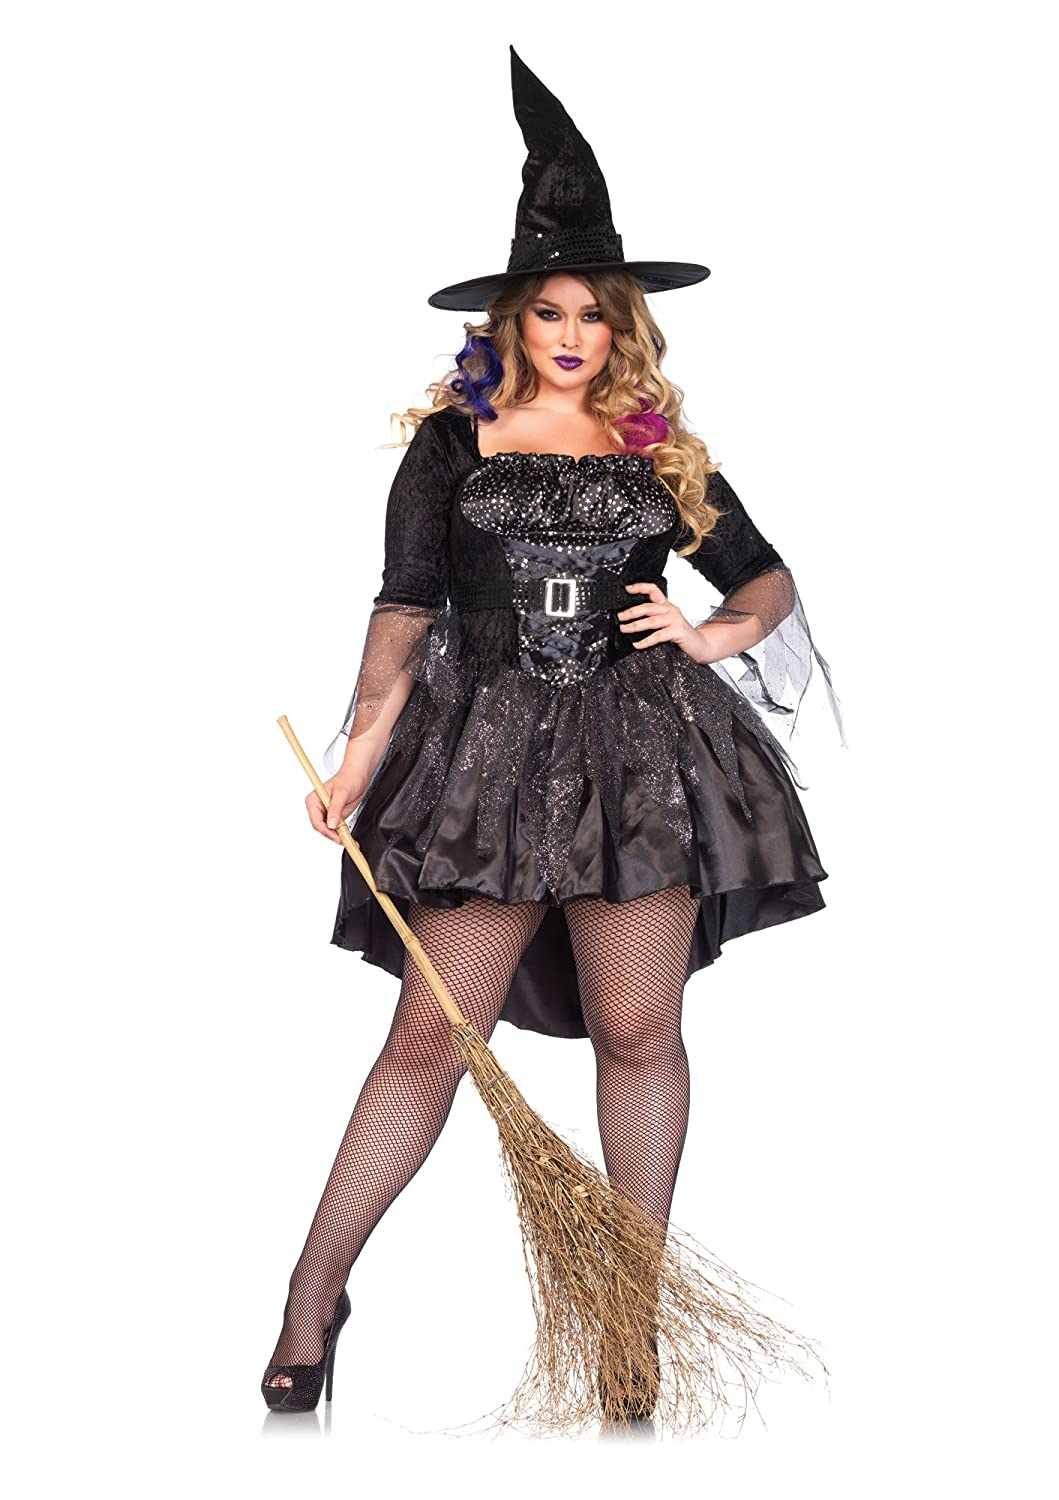 Leg Avenue Women's Plus-Size Black Magic Mistress Leg Avenue Costumes 85475X08001-P